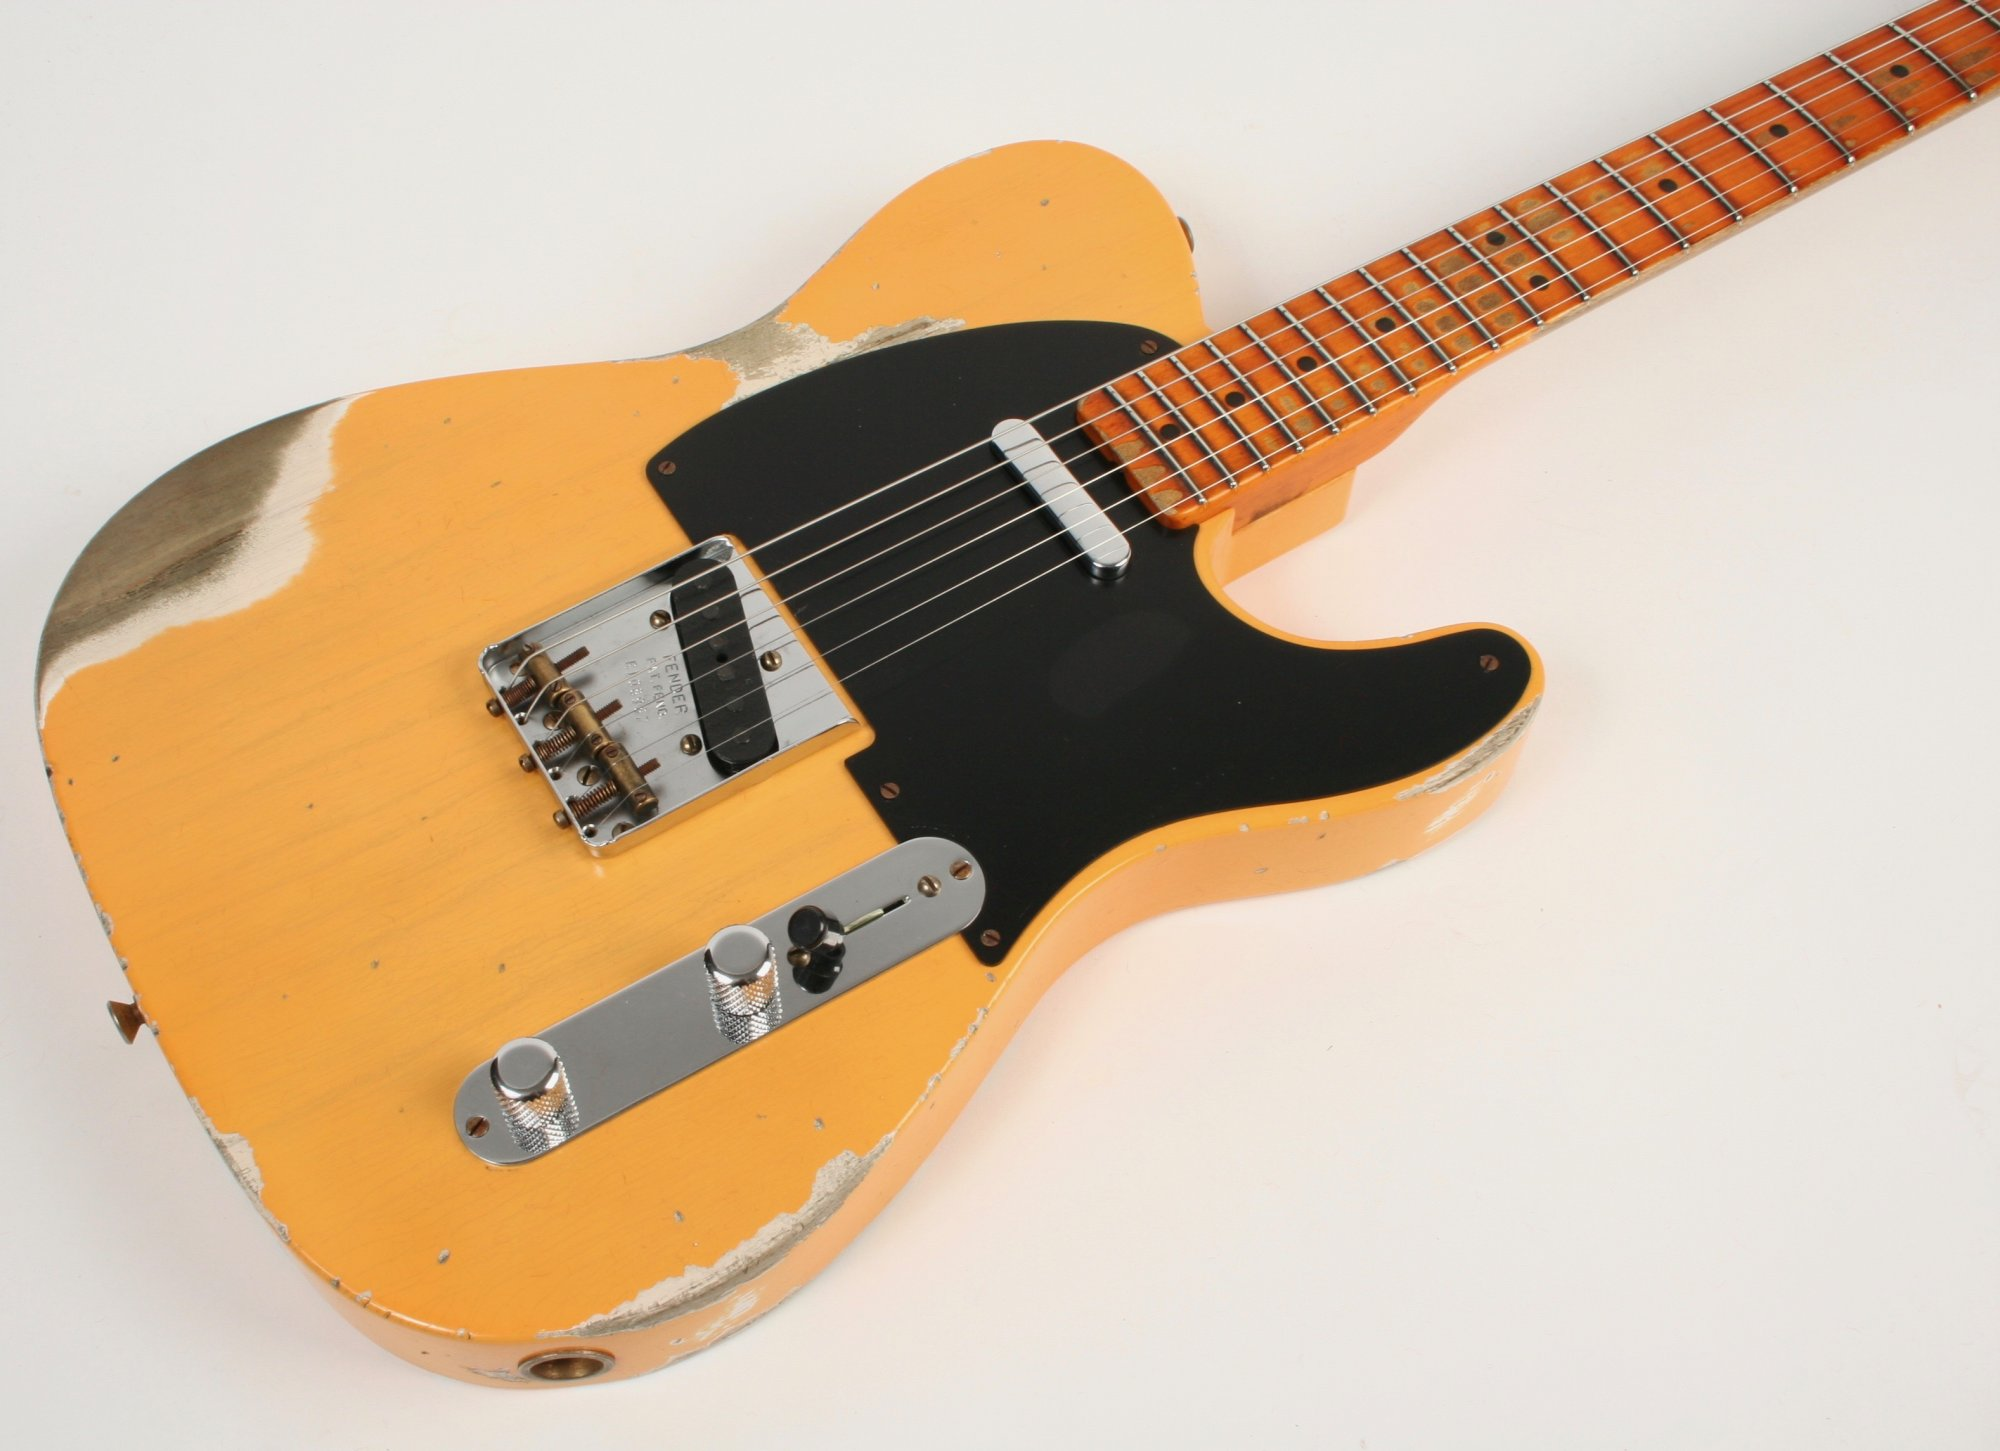 Fender Custom Shop Limited Edition 70th Anniversary Broadcaster Heavy Relic Nocaster Blonde